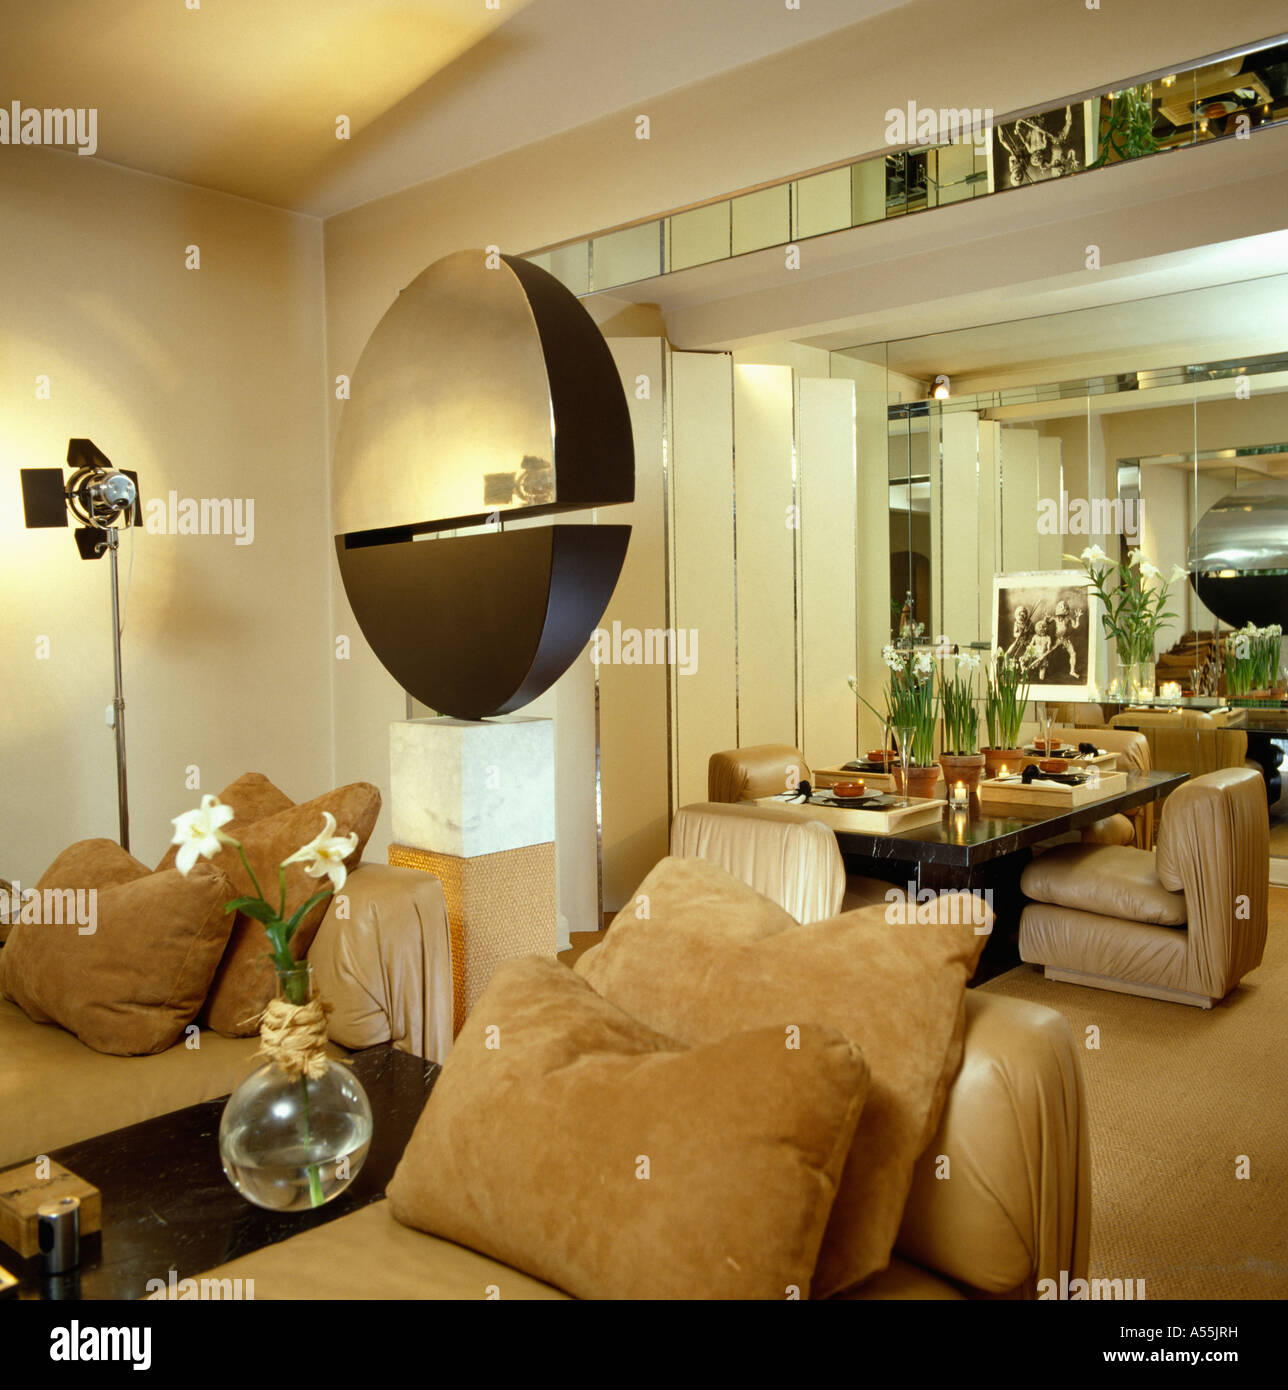 Modern Mirrored Walls In Living Rooms Image Collection - The Wall ...